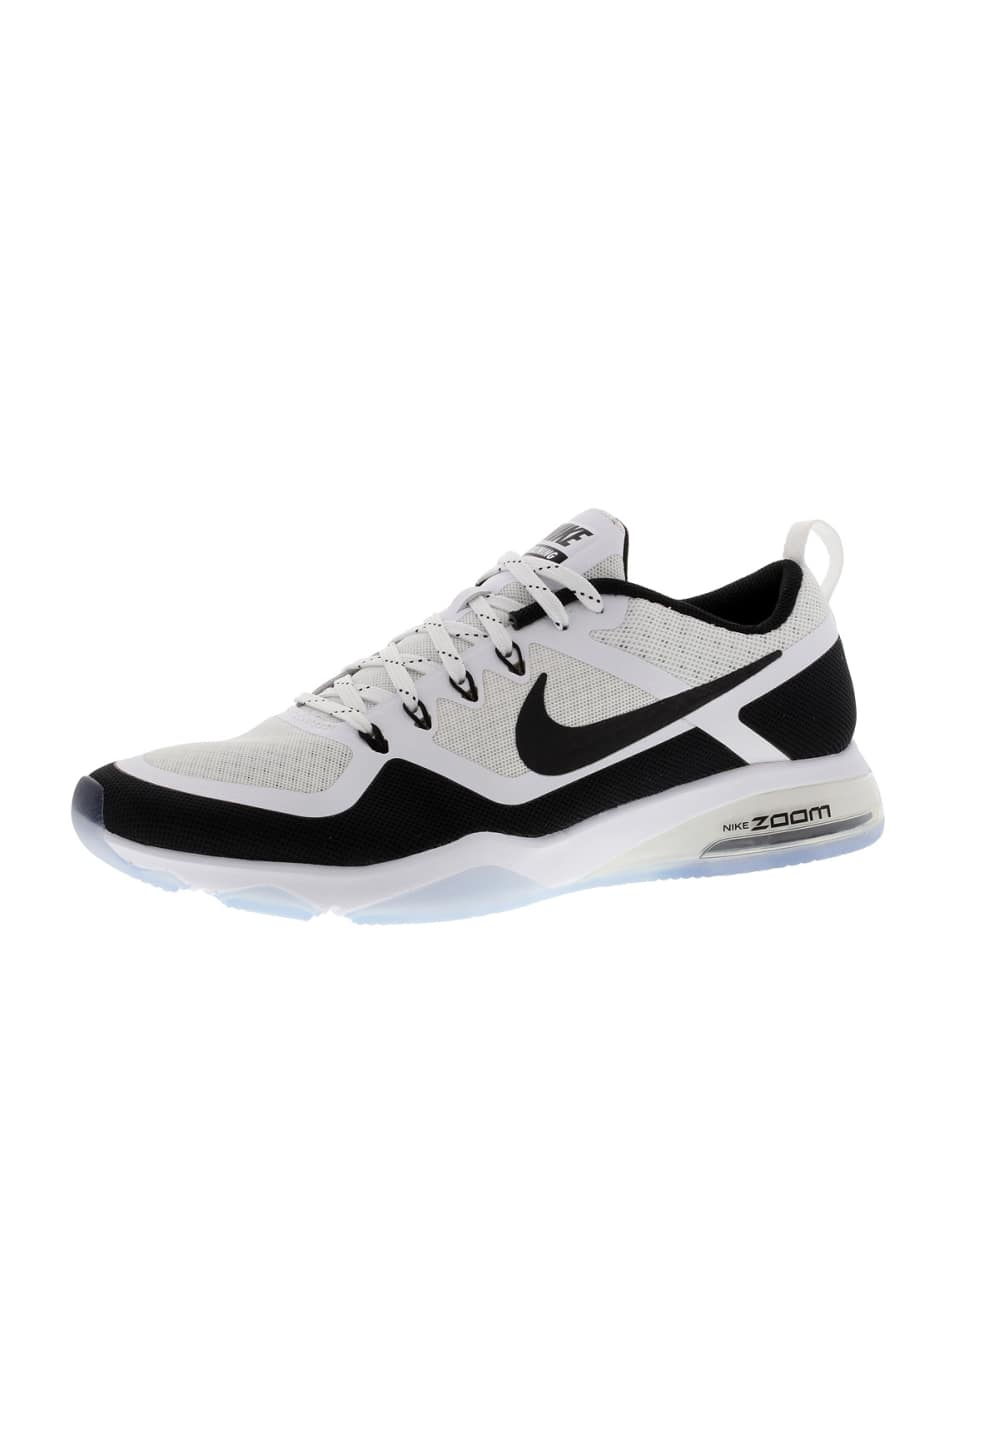 a8432eaea1fd1 Nike Zoom Fitness - Fitness shoes for Women - Grey